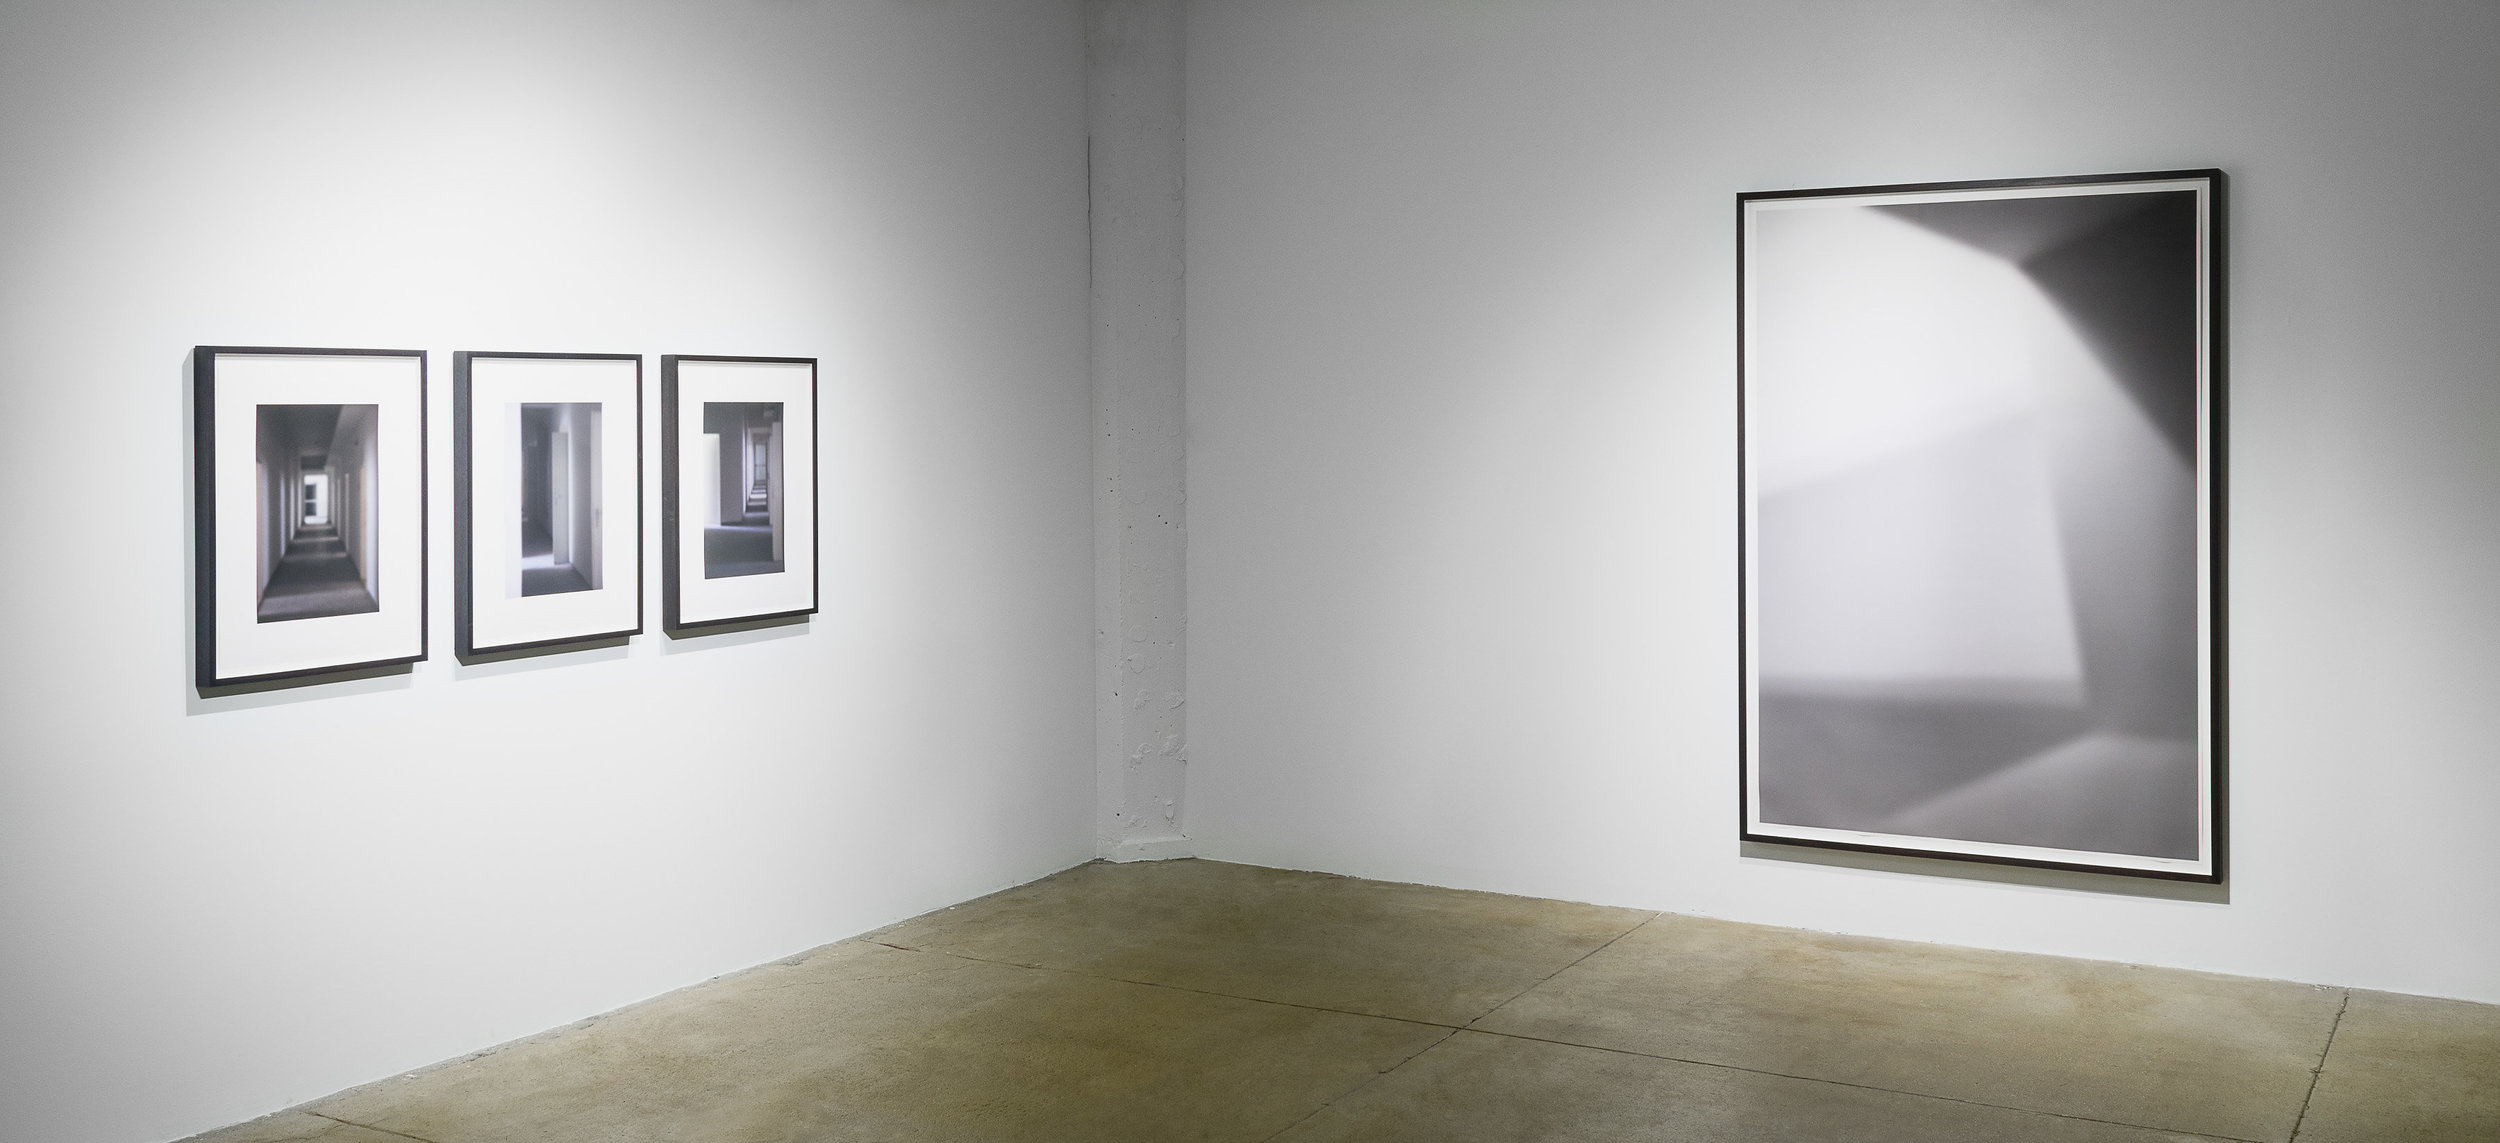 Eva Schlegel: Subverting Solidity,  installation view, Gallery Wendi Norris, San Francisco, CA, January 18 — March 18, 2017, photography: Hewitt Photography